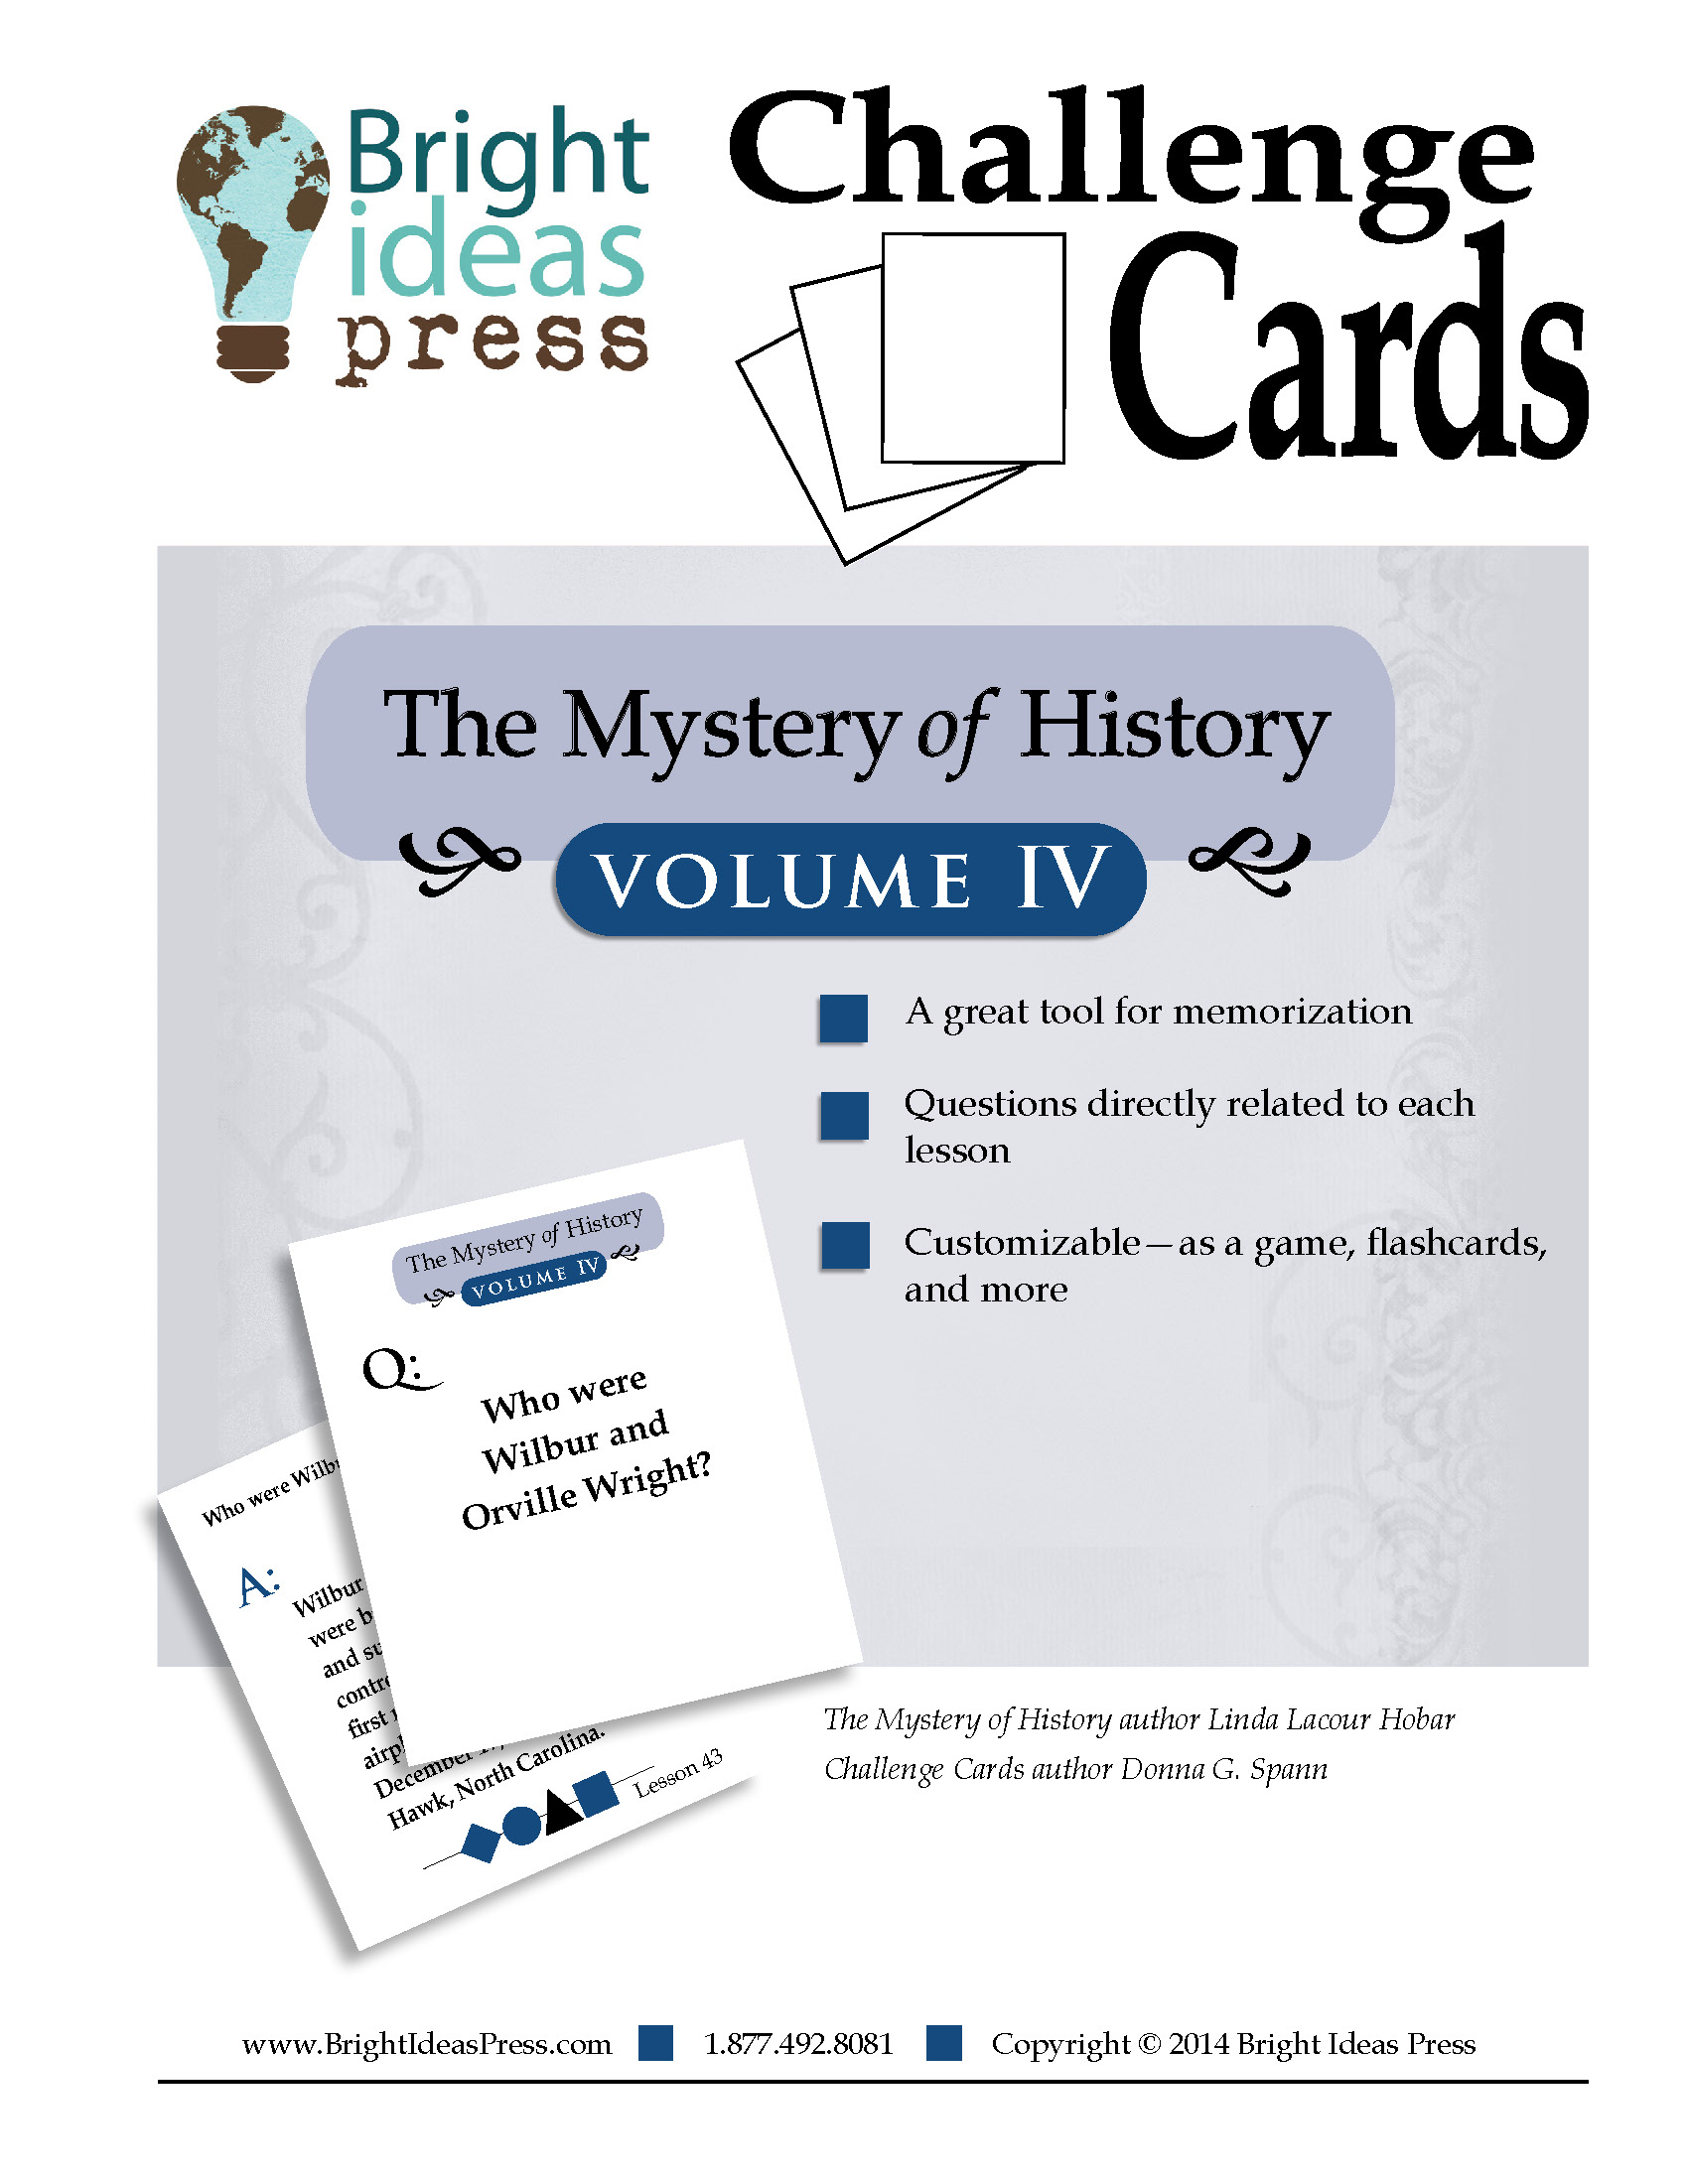 The Mystery of History Volume IV Challenge Cards by Bright Ideas Press